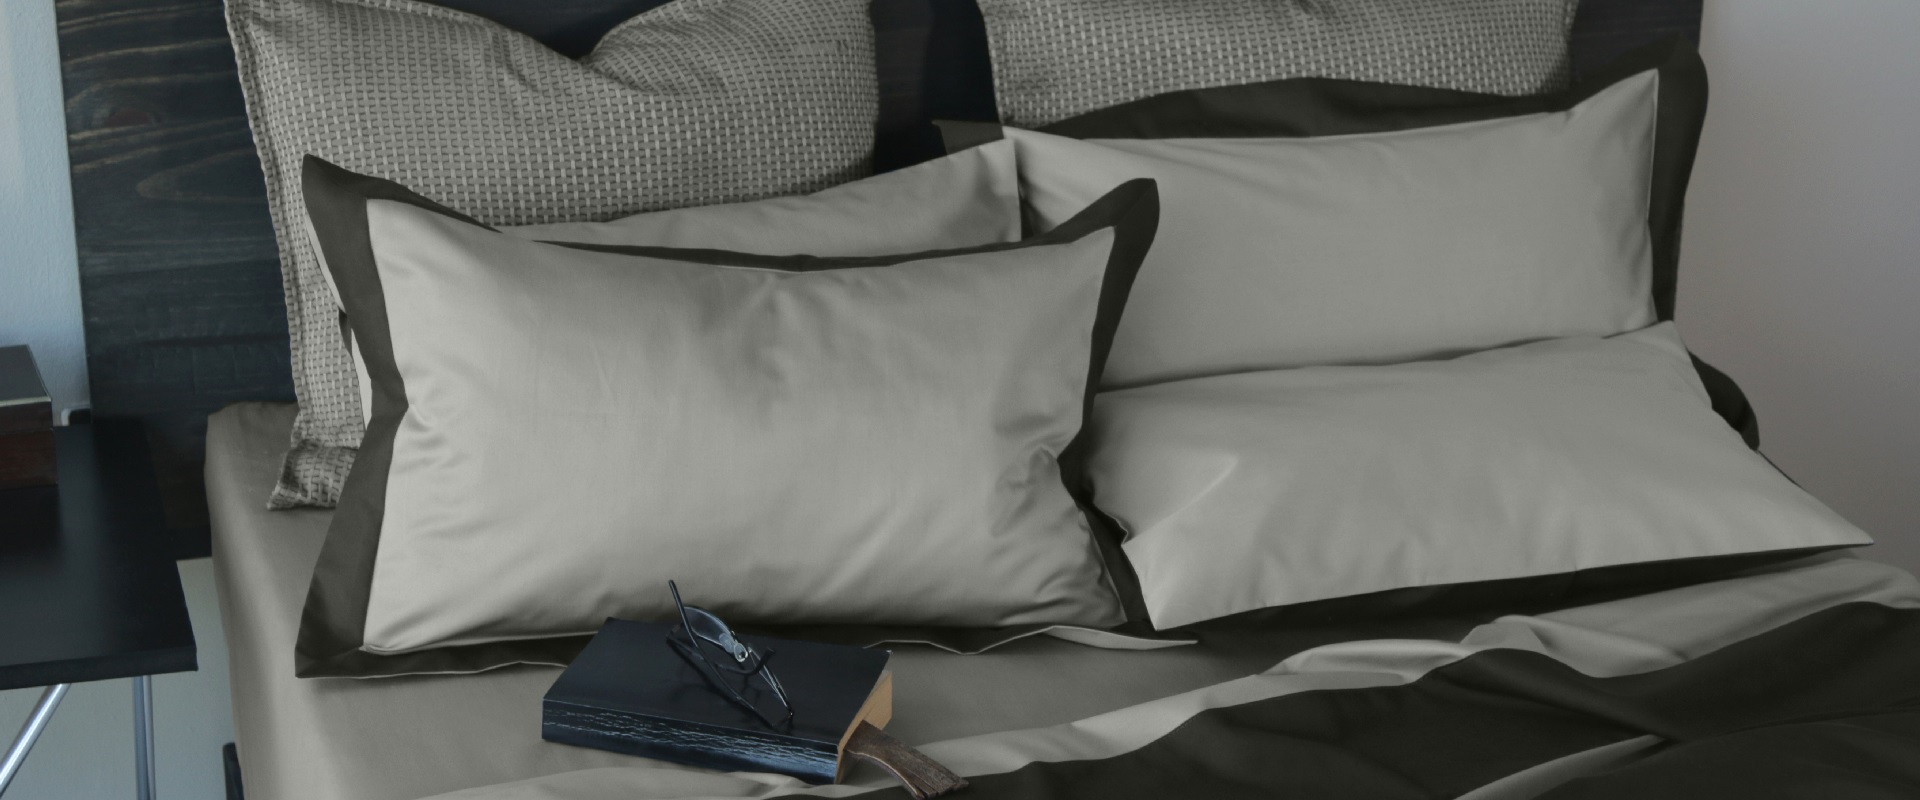 Falucca   signature collection   shadow charcoal   resized slider   online shop   home page